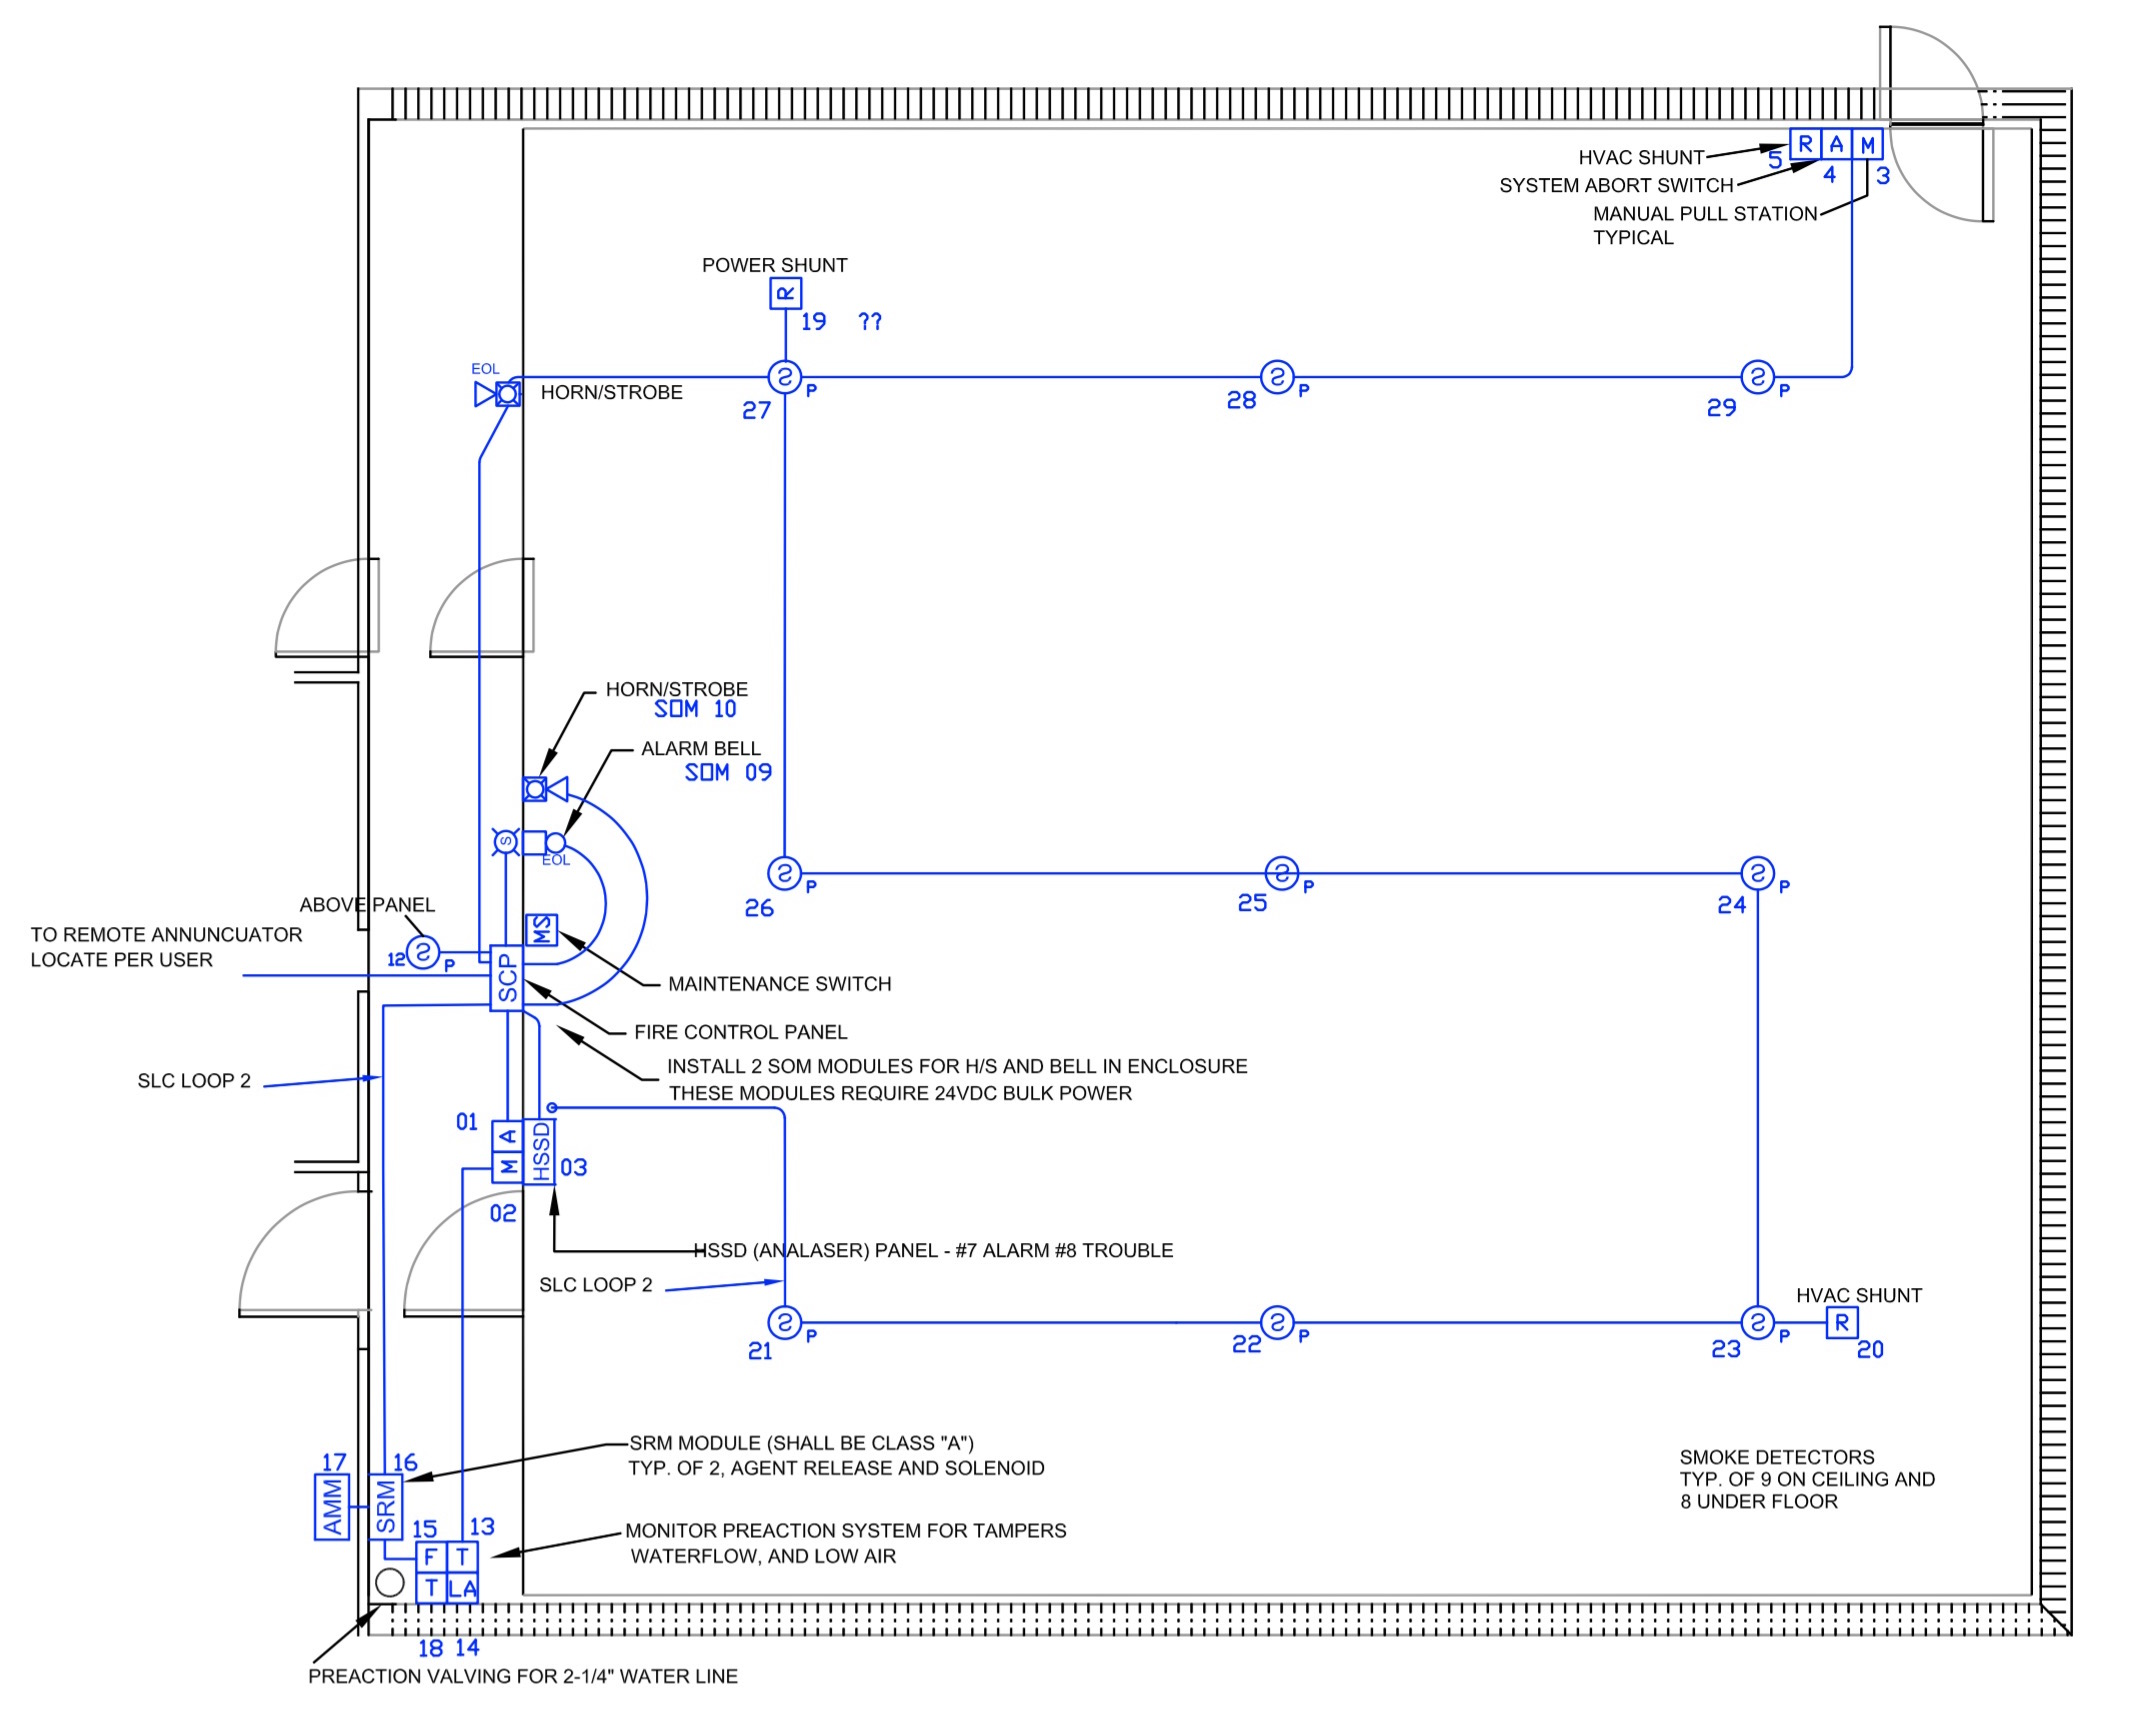 e&m inc  drawing showing correlator room above floor electrical layout  (part of: e&m fm200-0574b03 fa03)